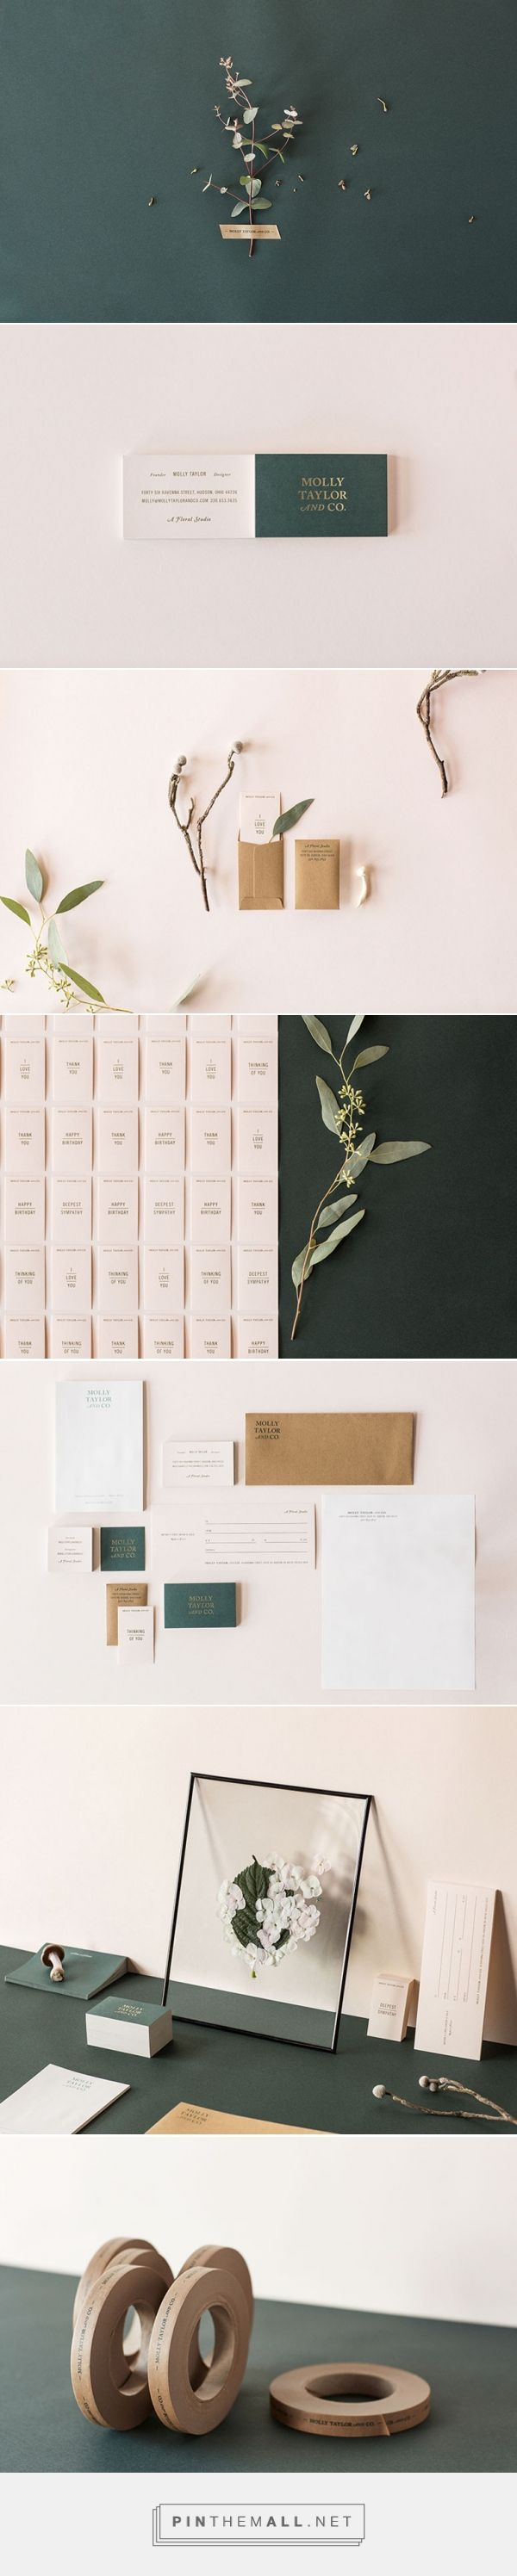 FPO: Molly Taylor & Co. Identity Materials - created via https://pinthemall.net